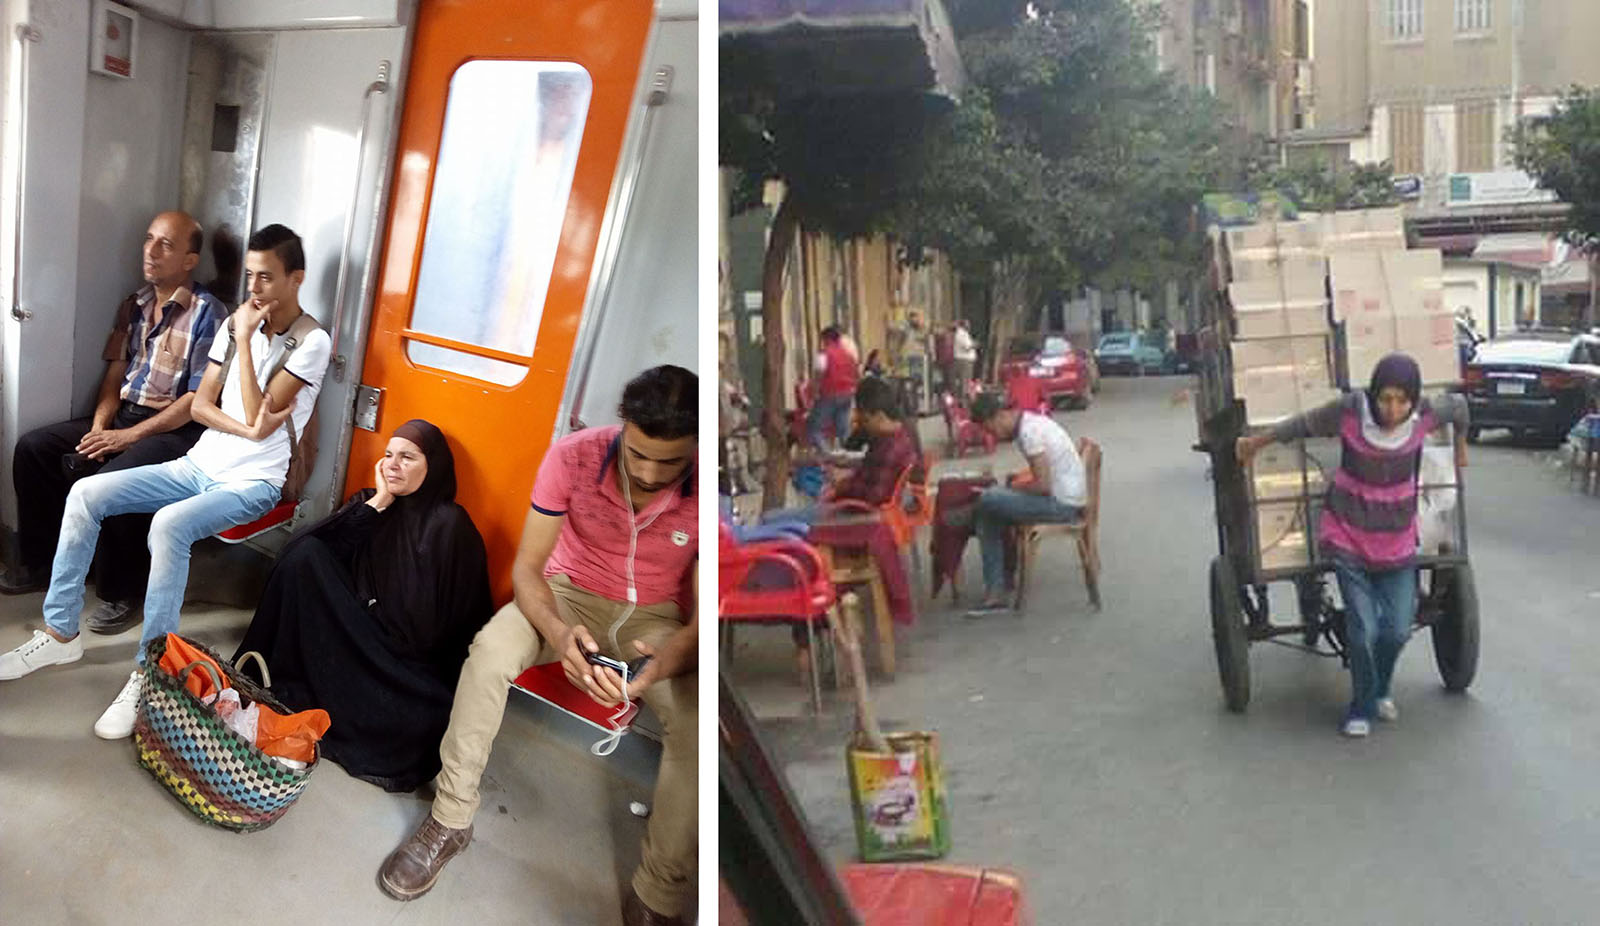 Images Reflecting the Devaluation and Oppression of Egyptian Women Go Viral